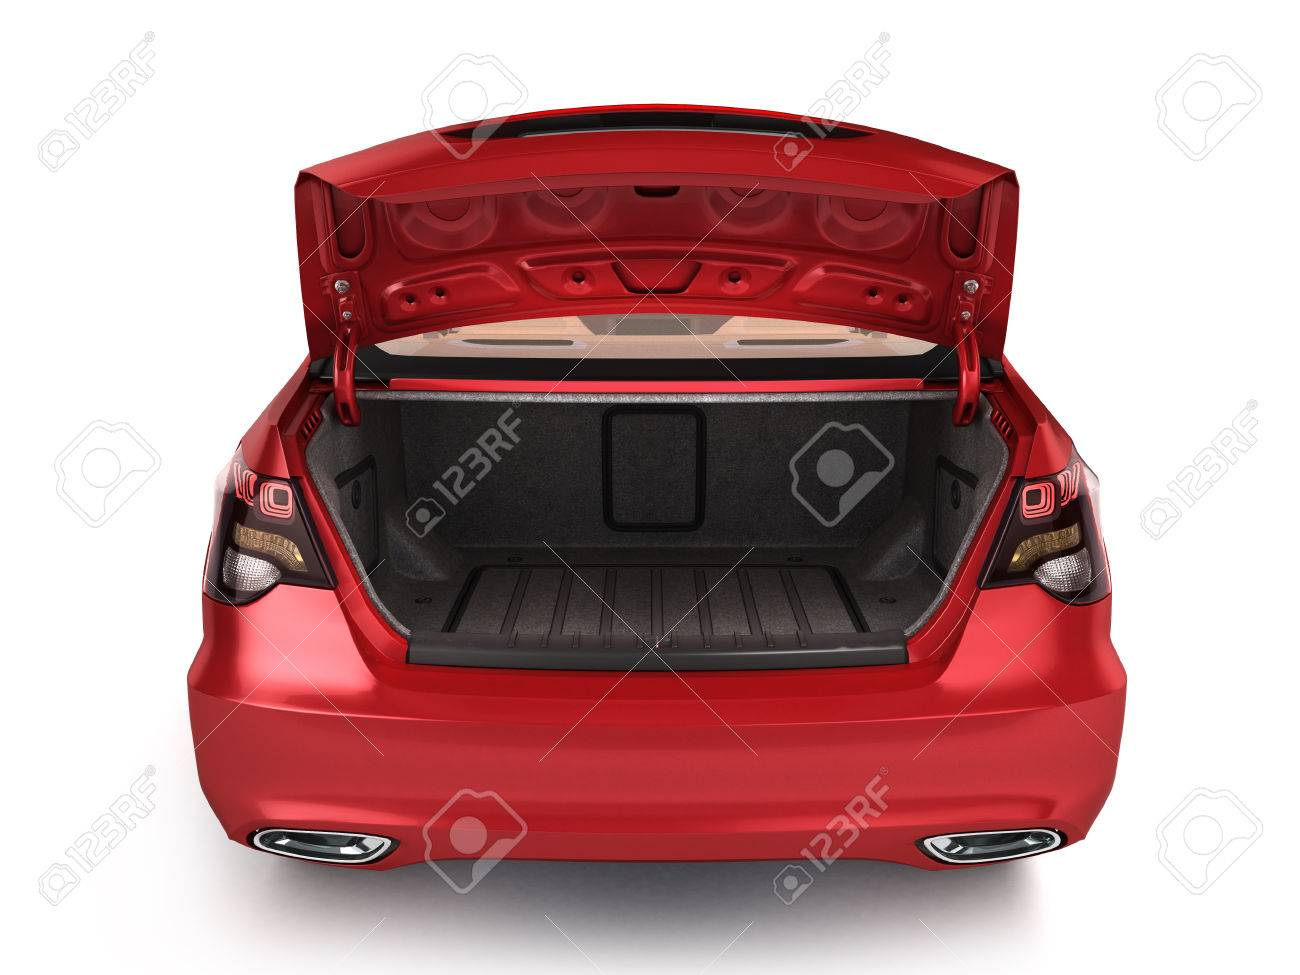 How to open the trunk